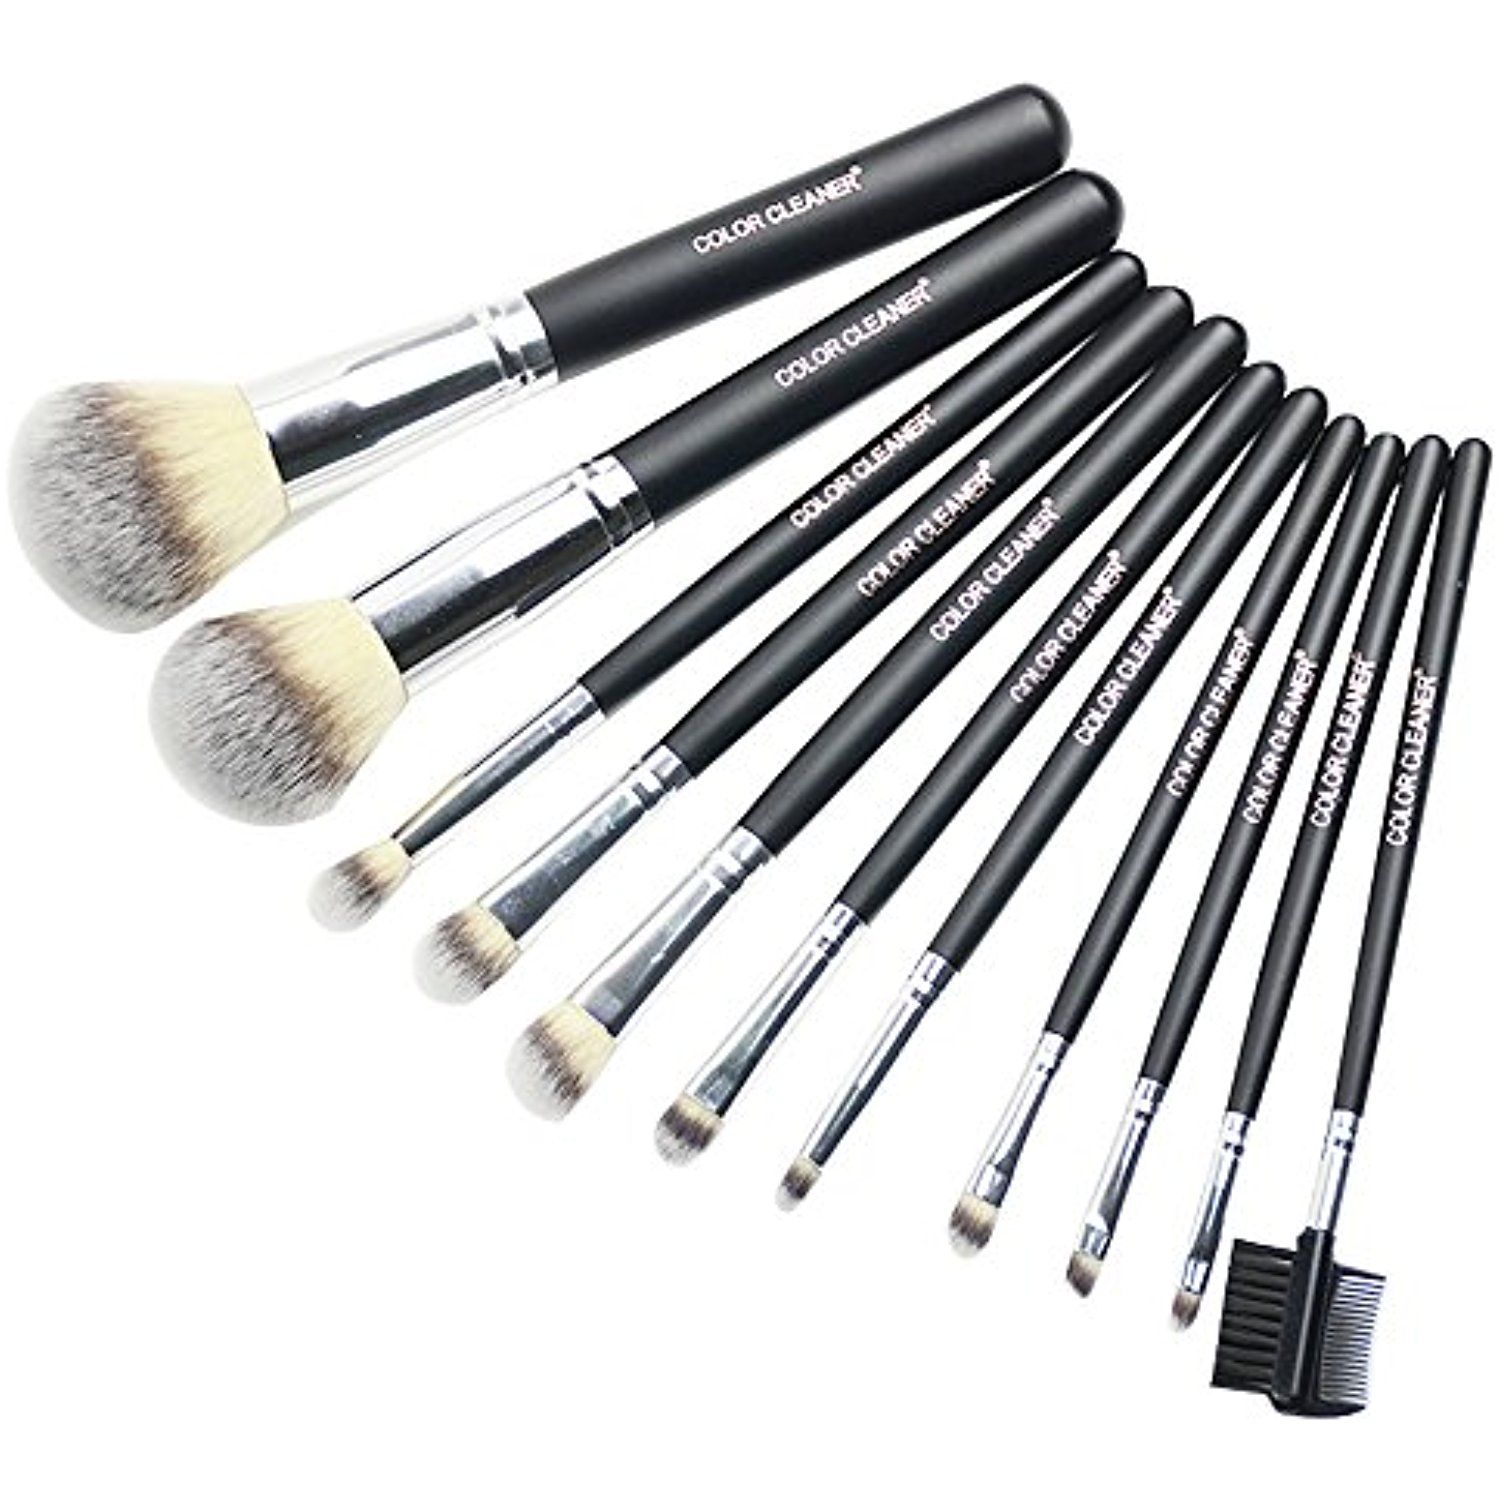 COLOR CLEANER Synthetic Hair Makeup Brush Set, 11 Pieces